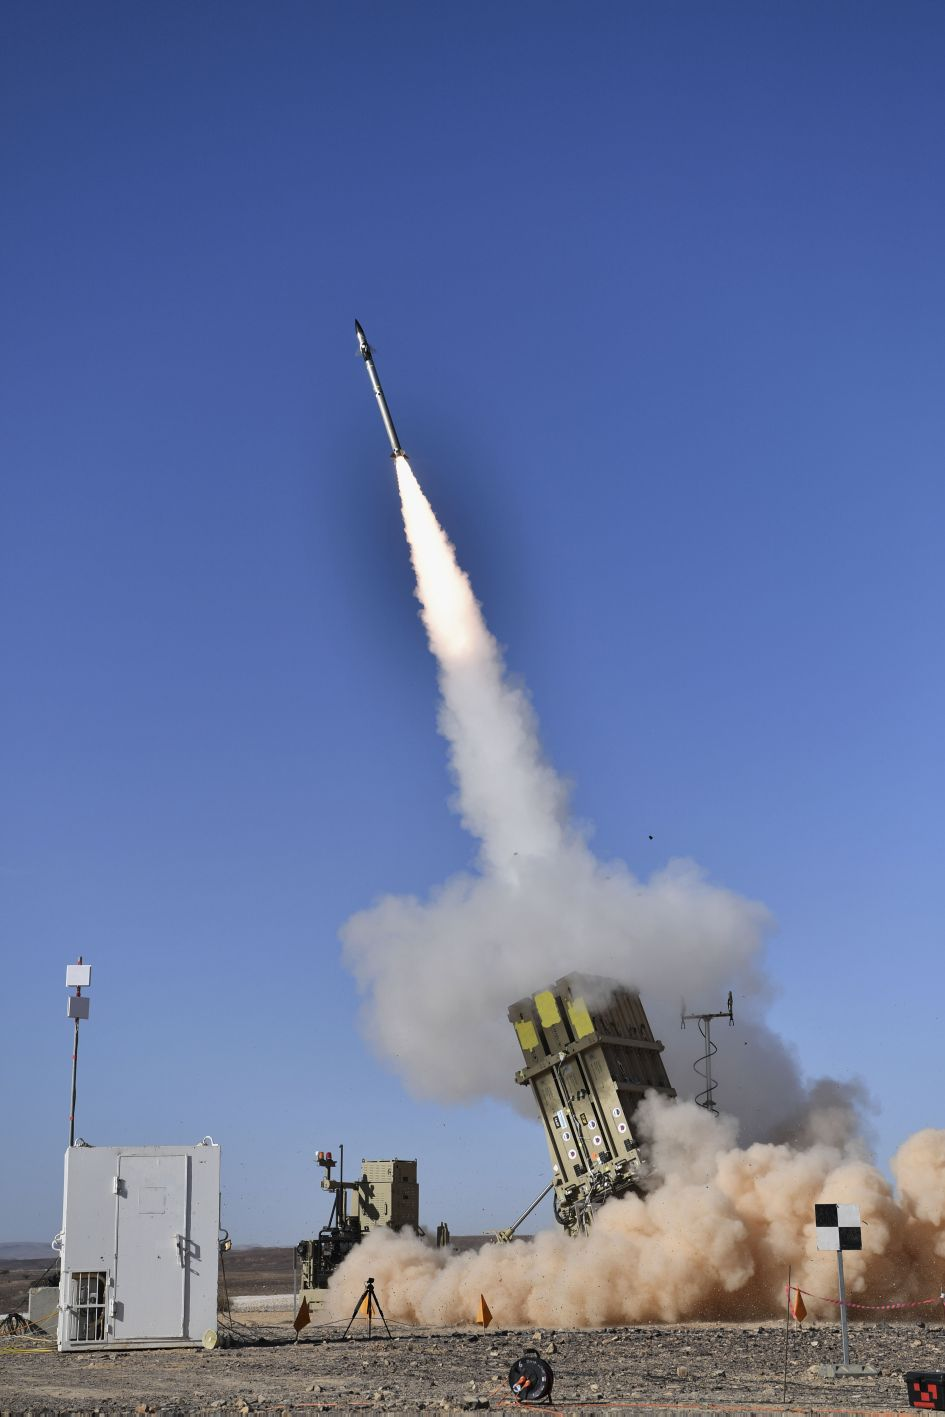 A Tamir missile is seen being fired from an Iron Dome launcher during the recent tests. The US Army has said that it has various concerns with fielding the system or parts of the system. (Israeli Ministry of Defense)